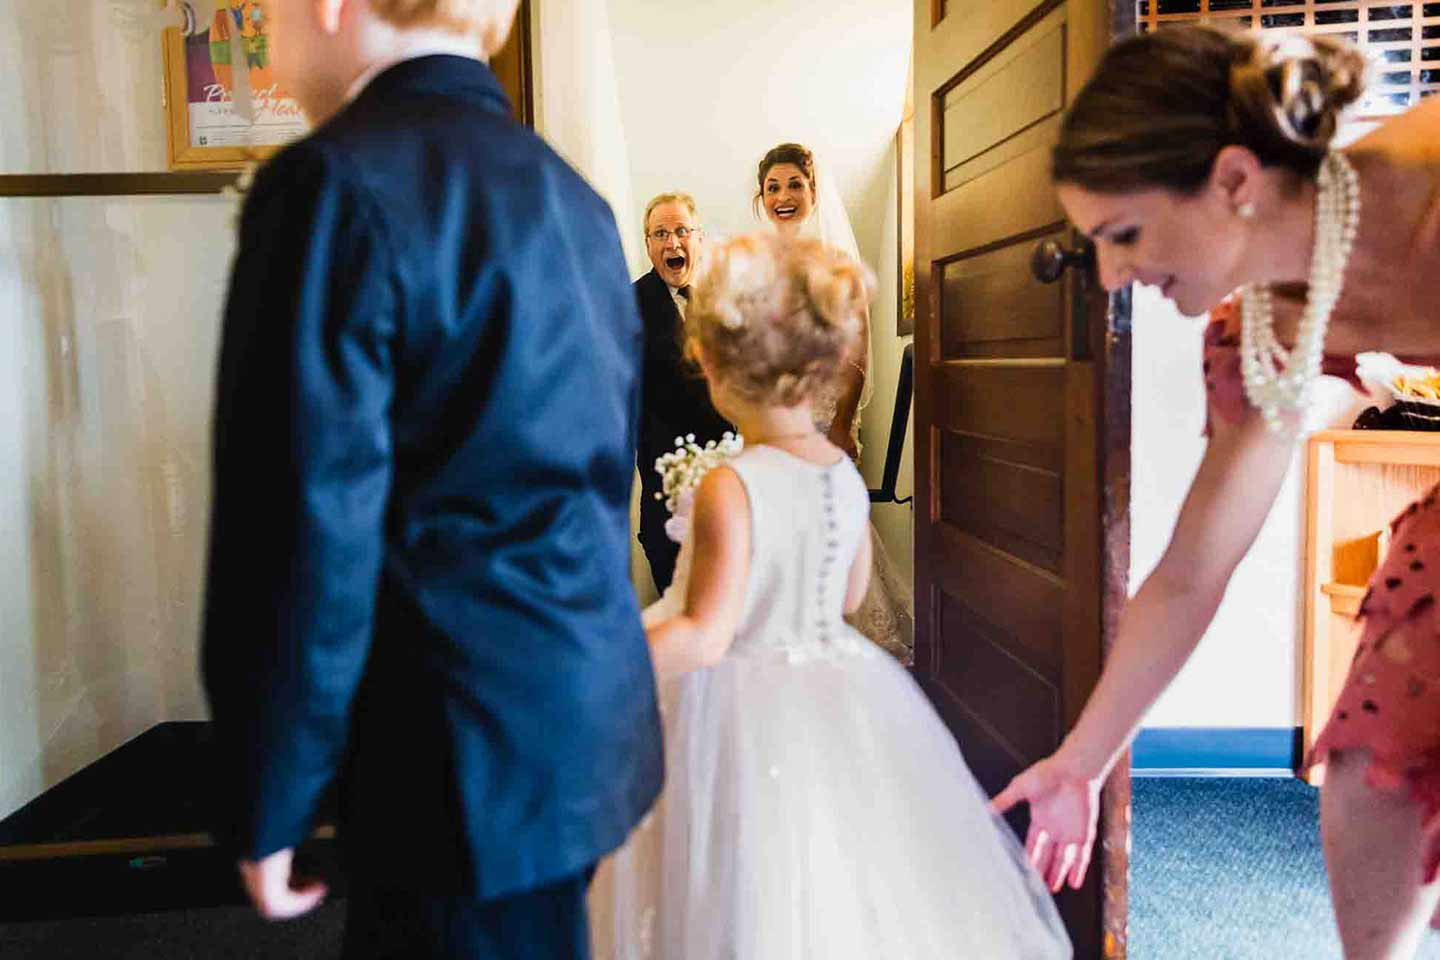 bride and her dad laugh at the flower girl and ring bearer, just before they walk up the aisle at her wedding